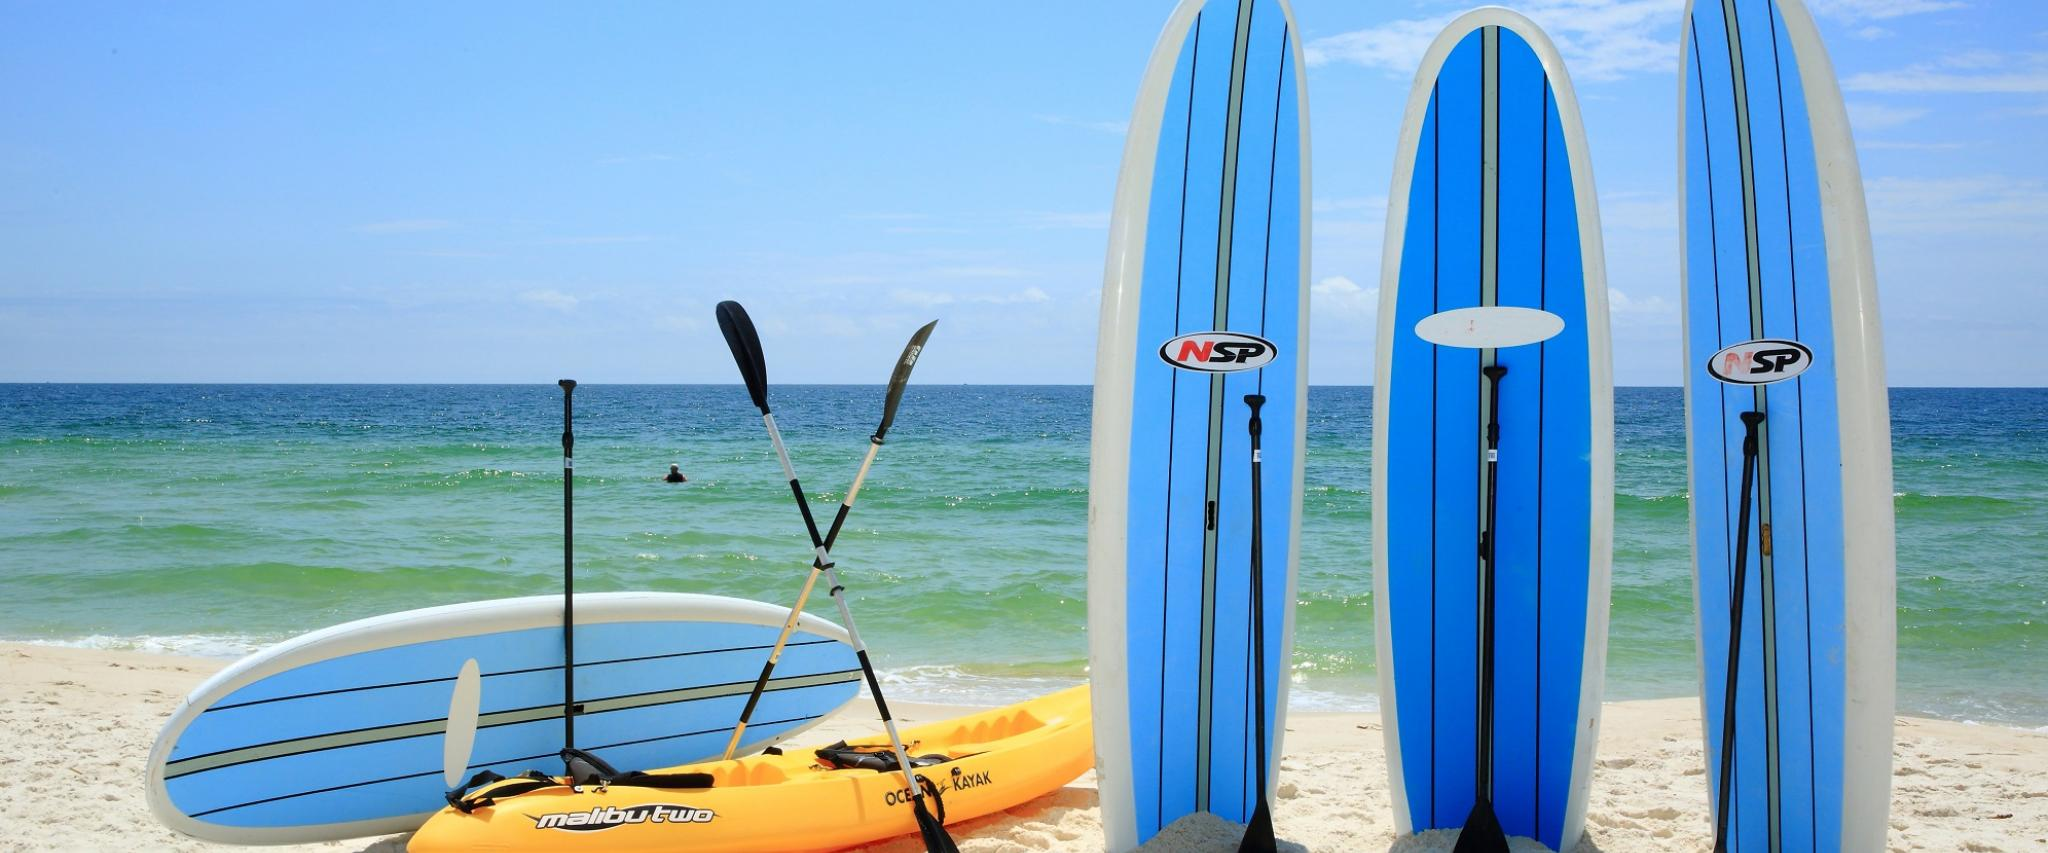 Water Equipment Rental Gulf Shores